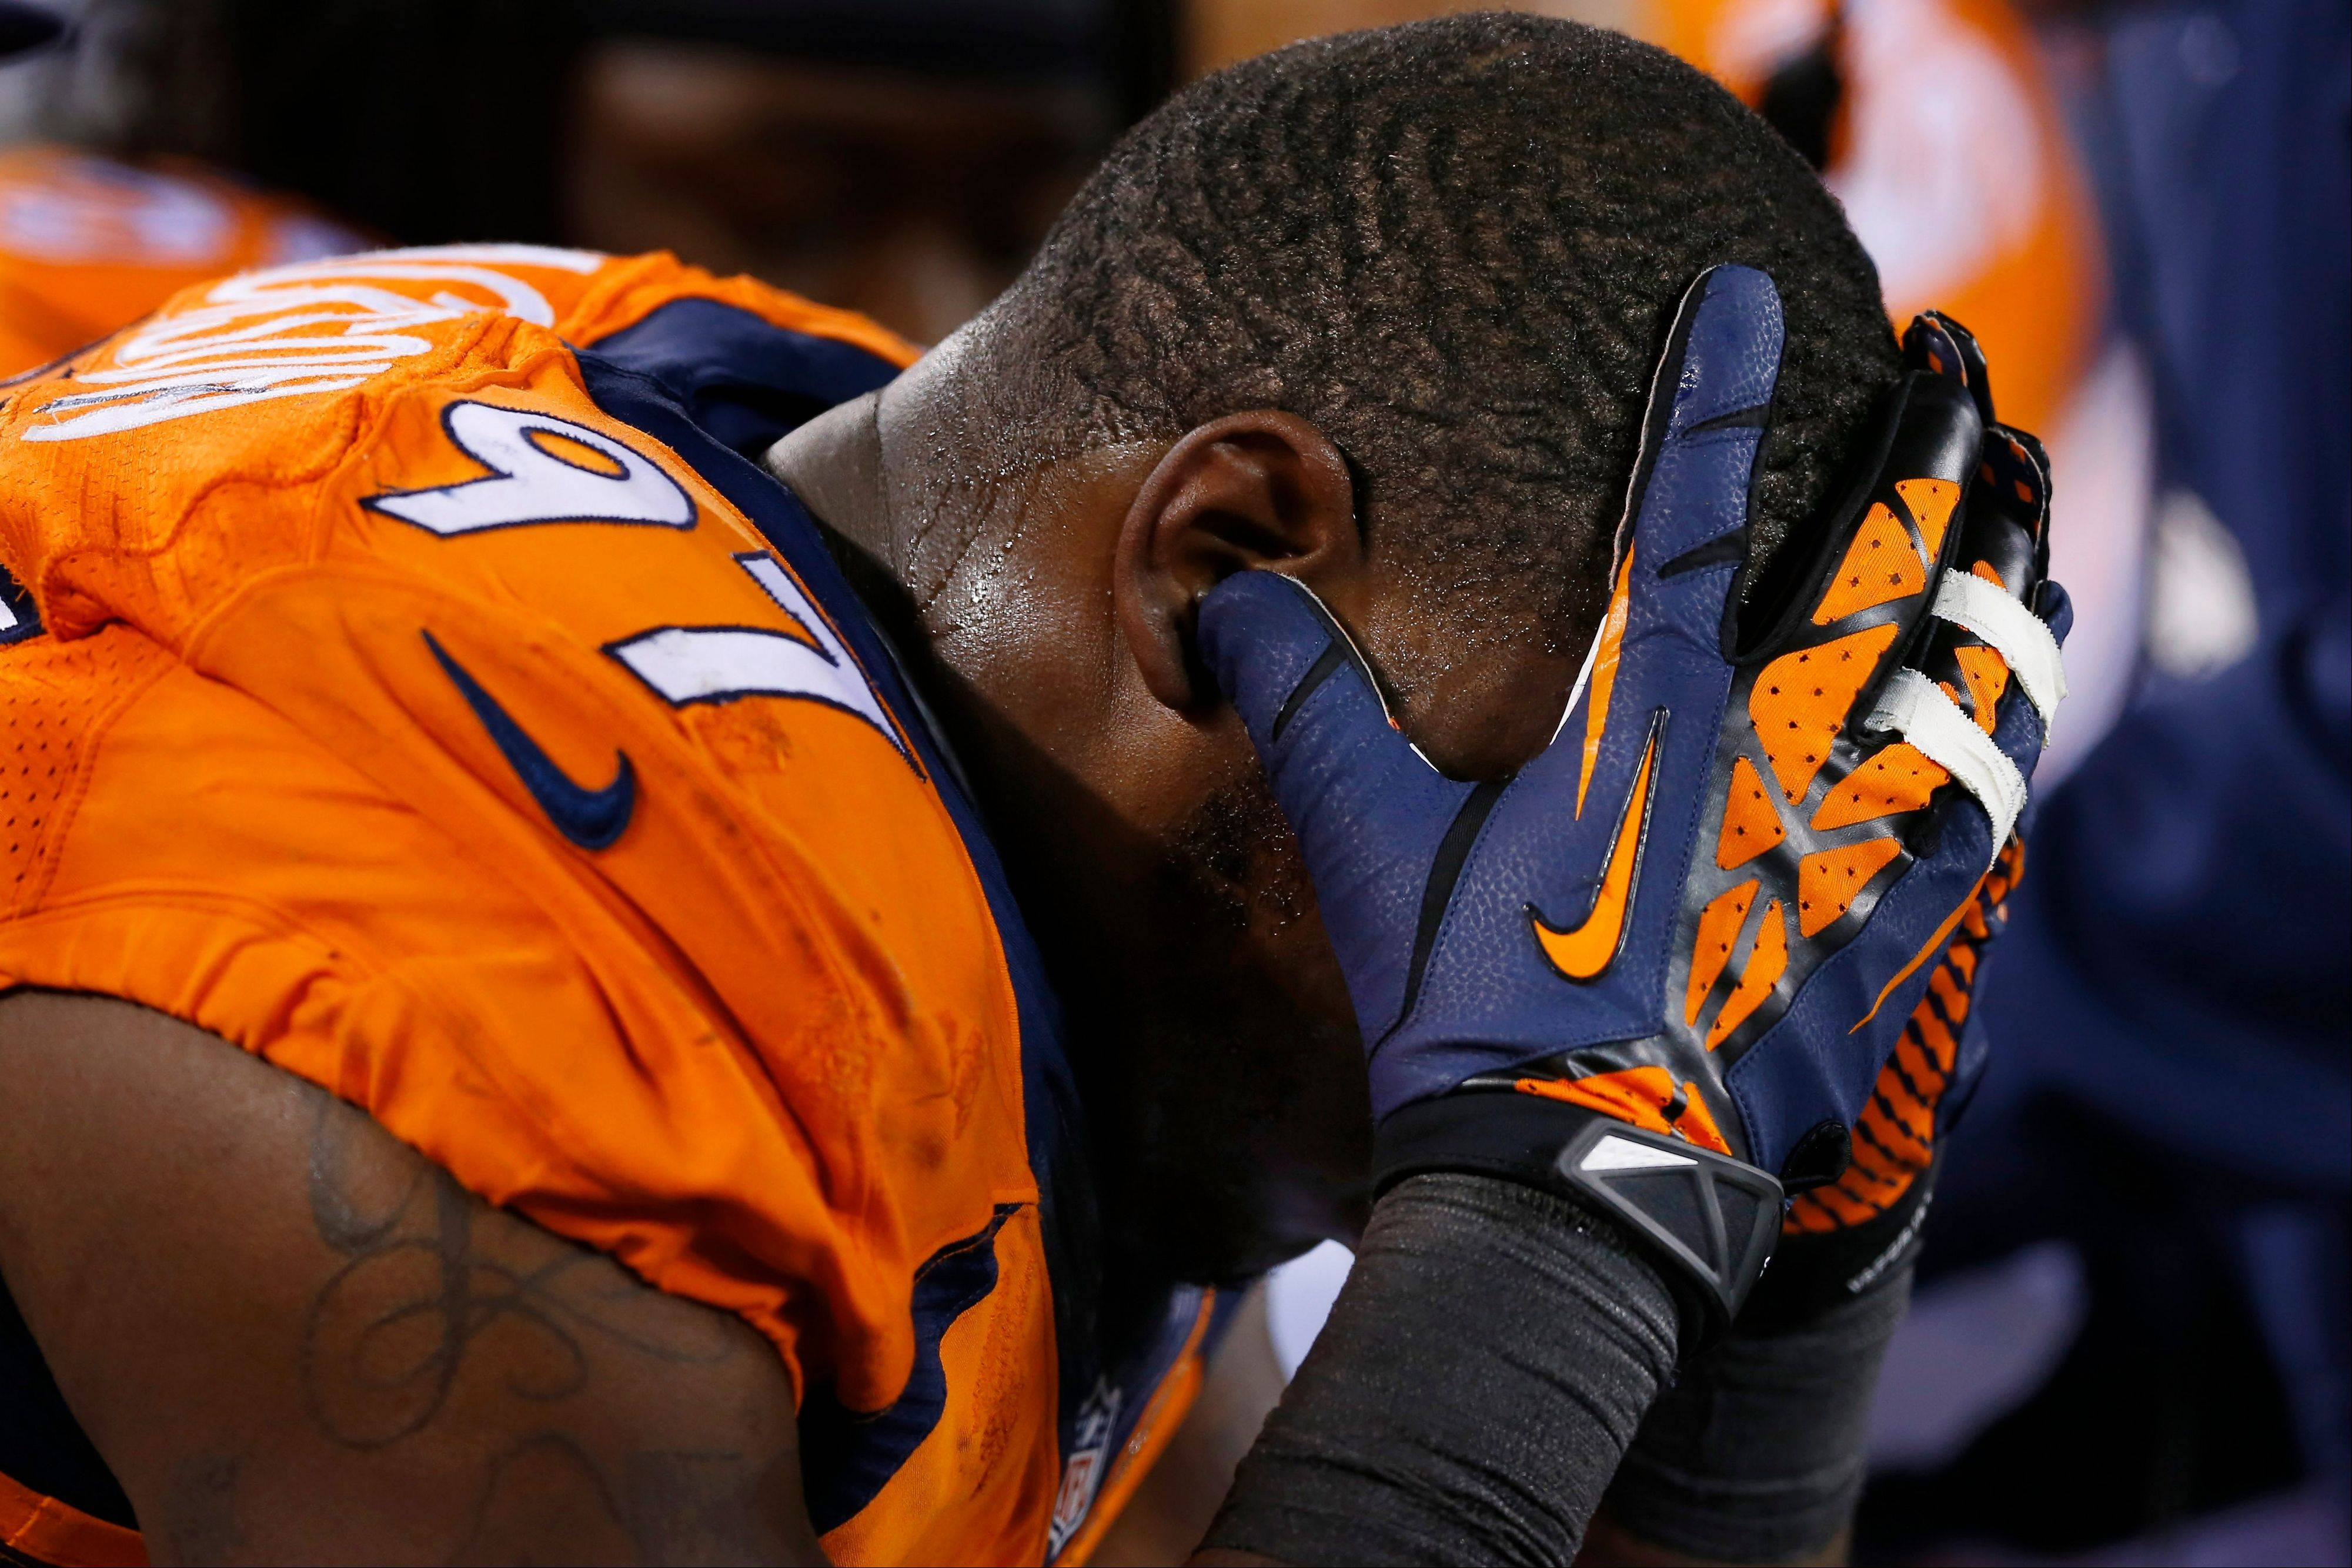 Denver Broncos' Malik Jackson cradles his head on the sidelines during the second half.